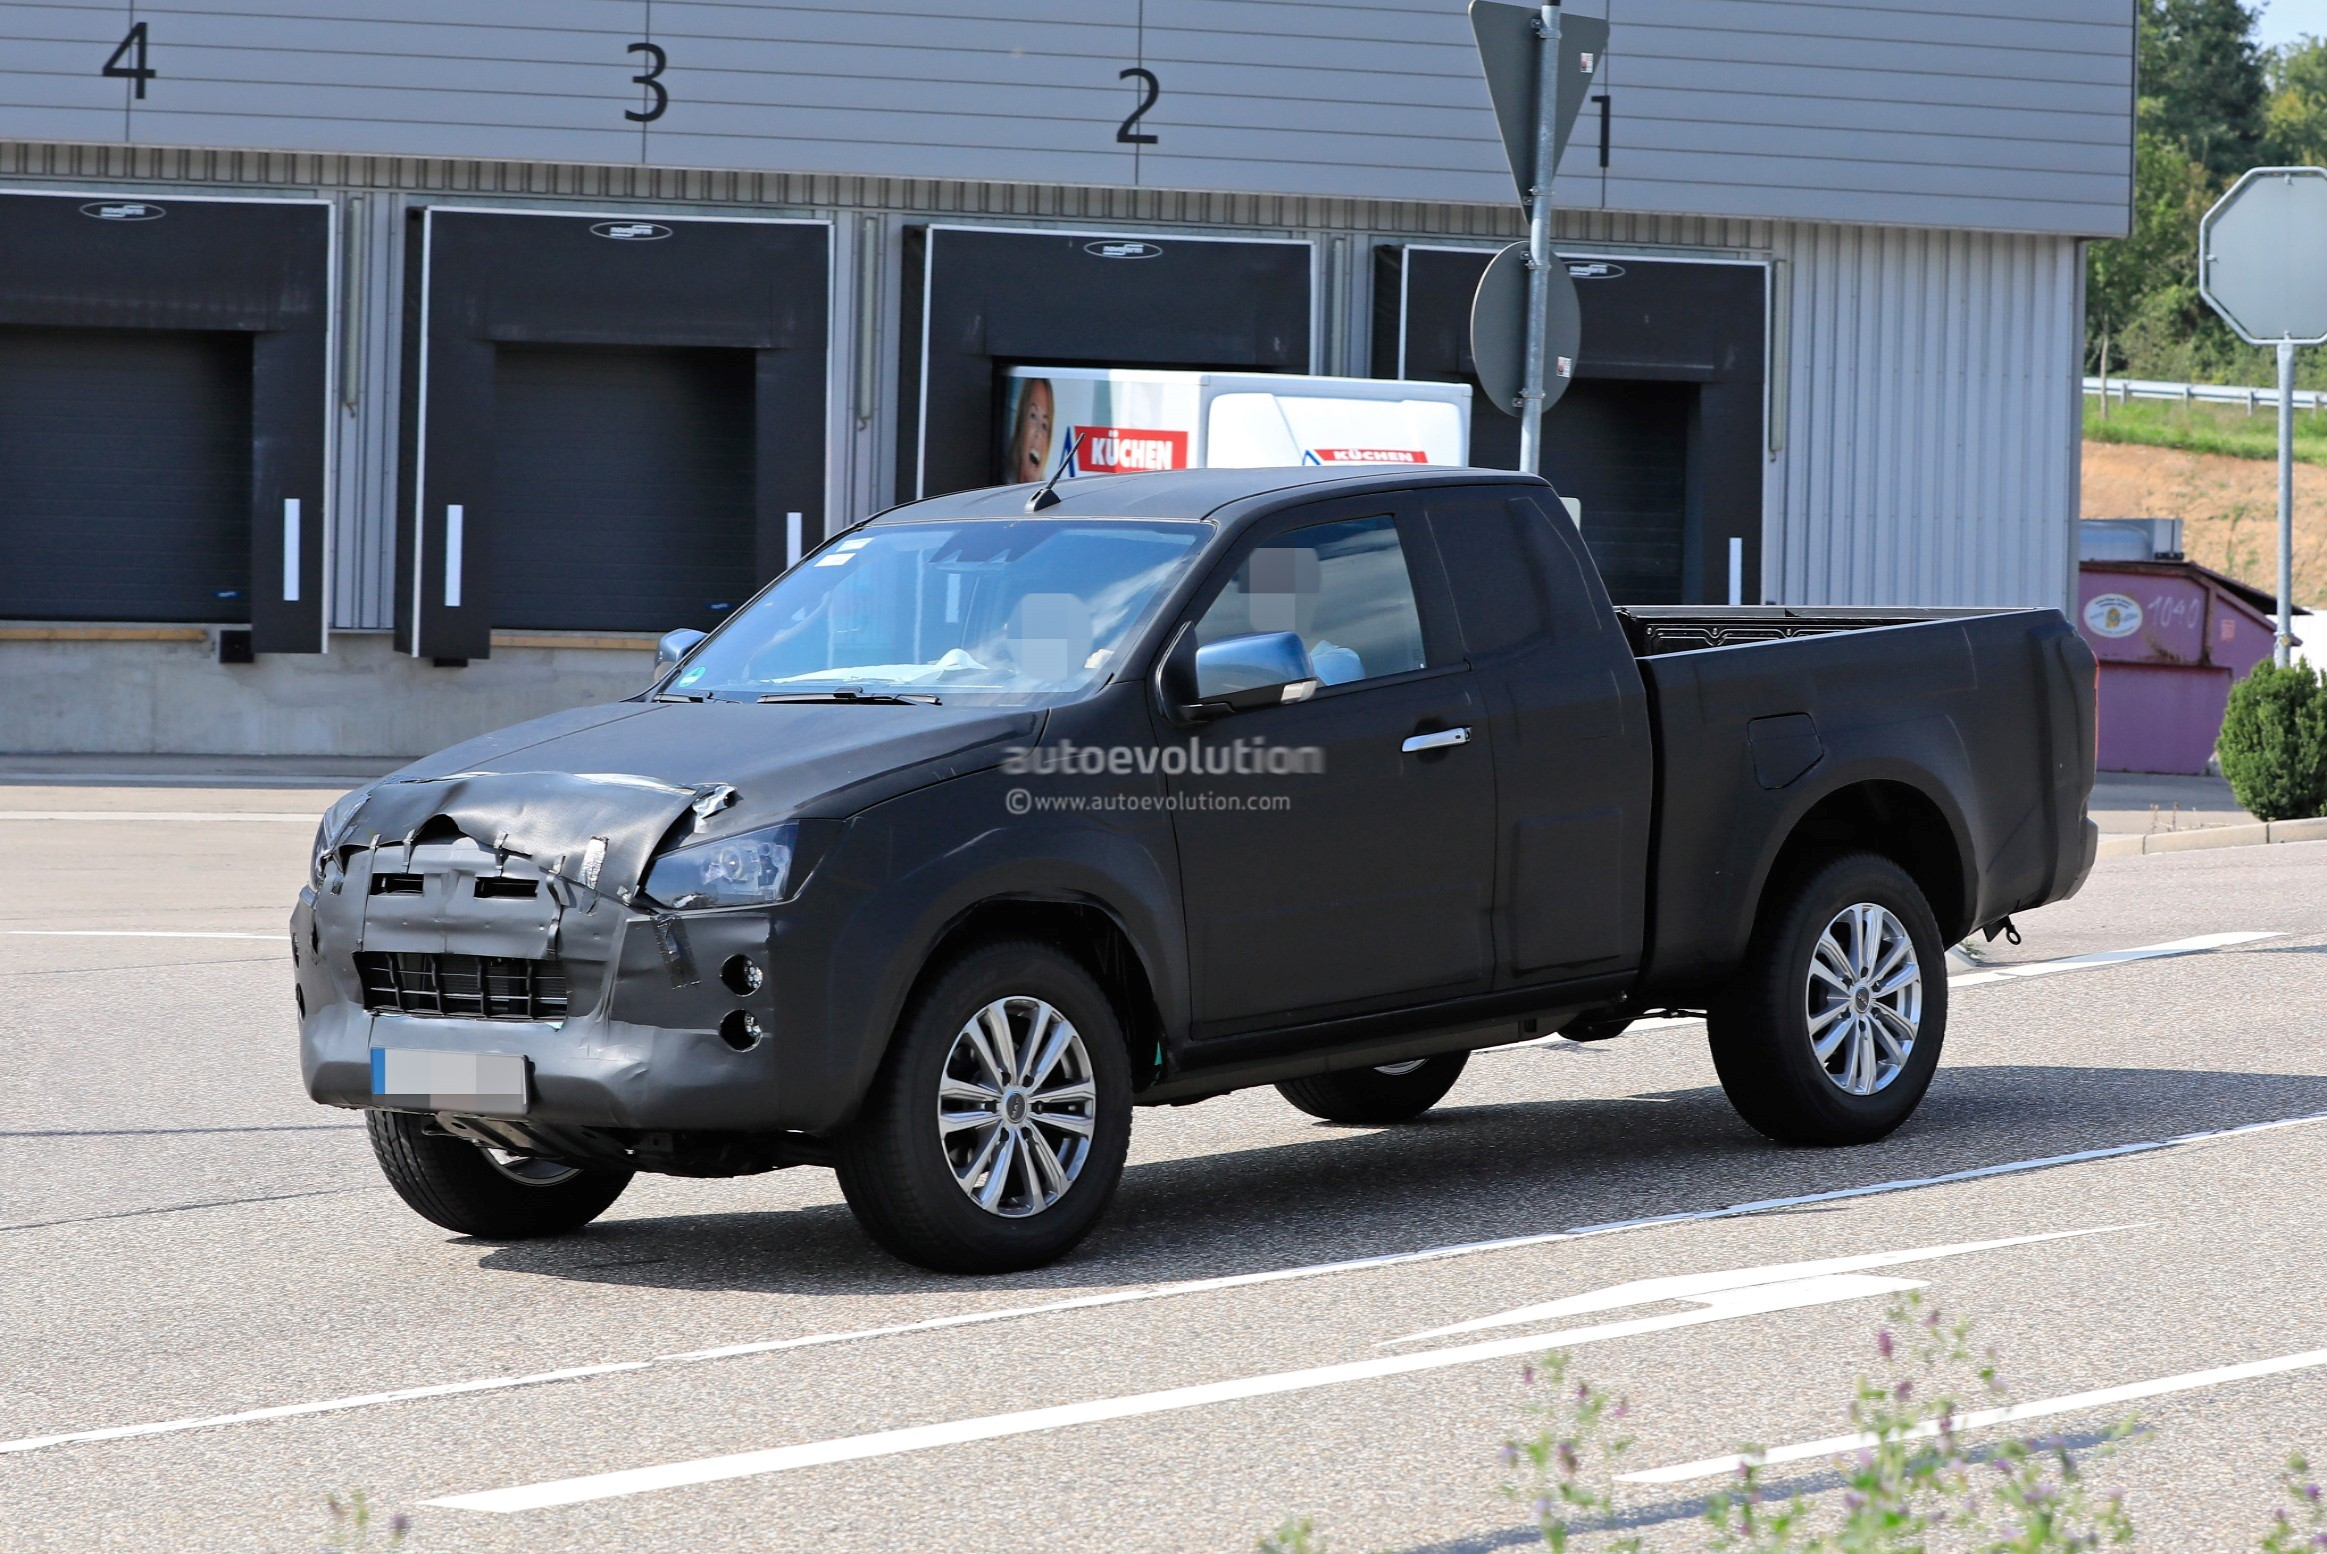 23 All New 2020 Isuzu Dmax Redesign and Review